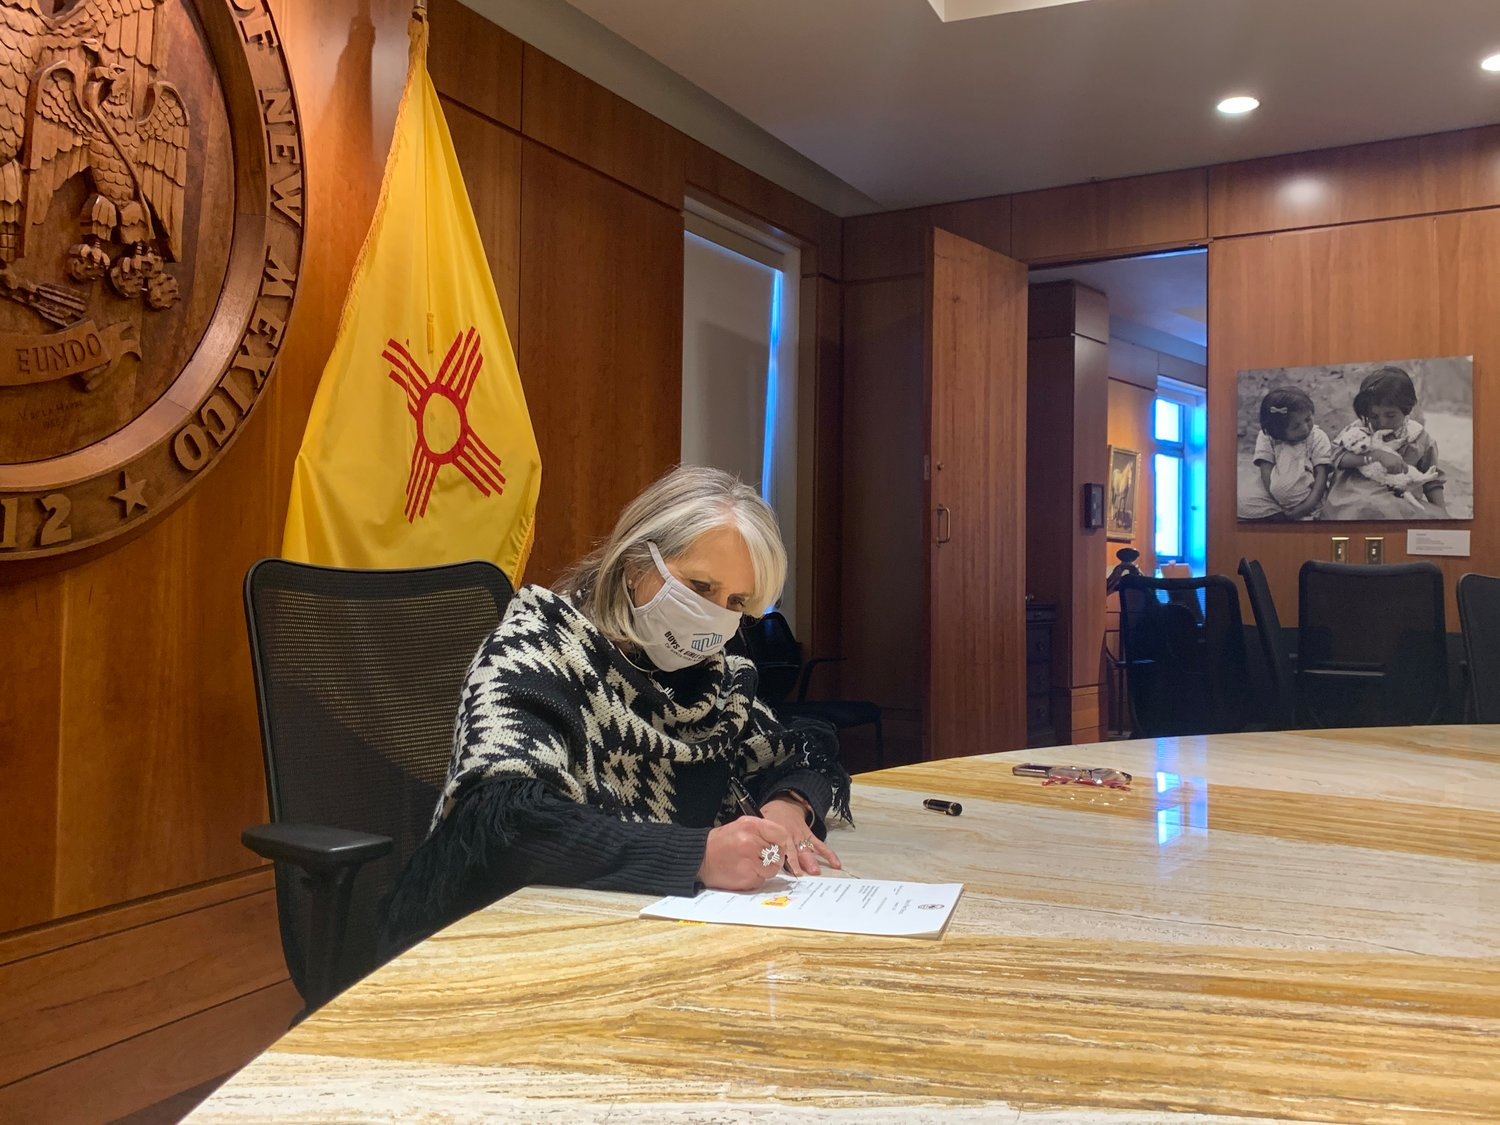 Gov. Michelle Lujan Grisham on Wednesday signed into law a significant relief package for New Mexicans that will deliver grants to small New Mexico businesses, supplemental payments to the unemployed and other emergency food and housing relief.